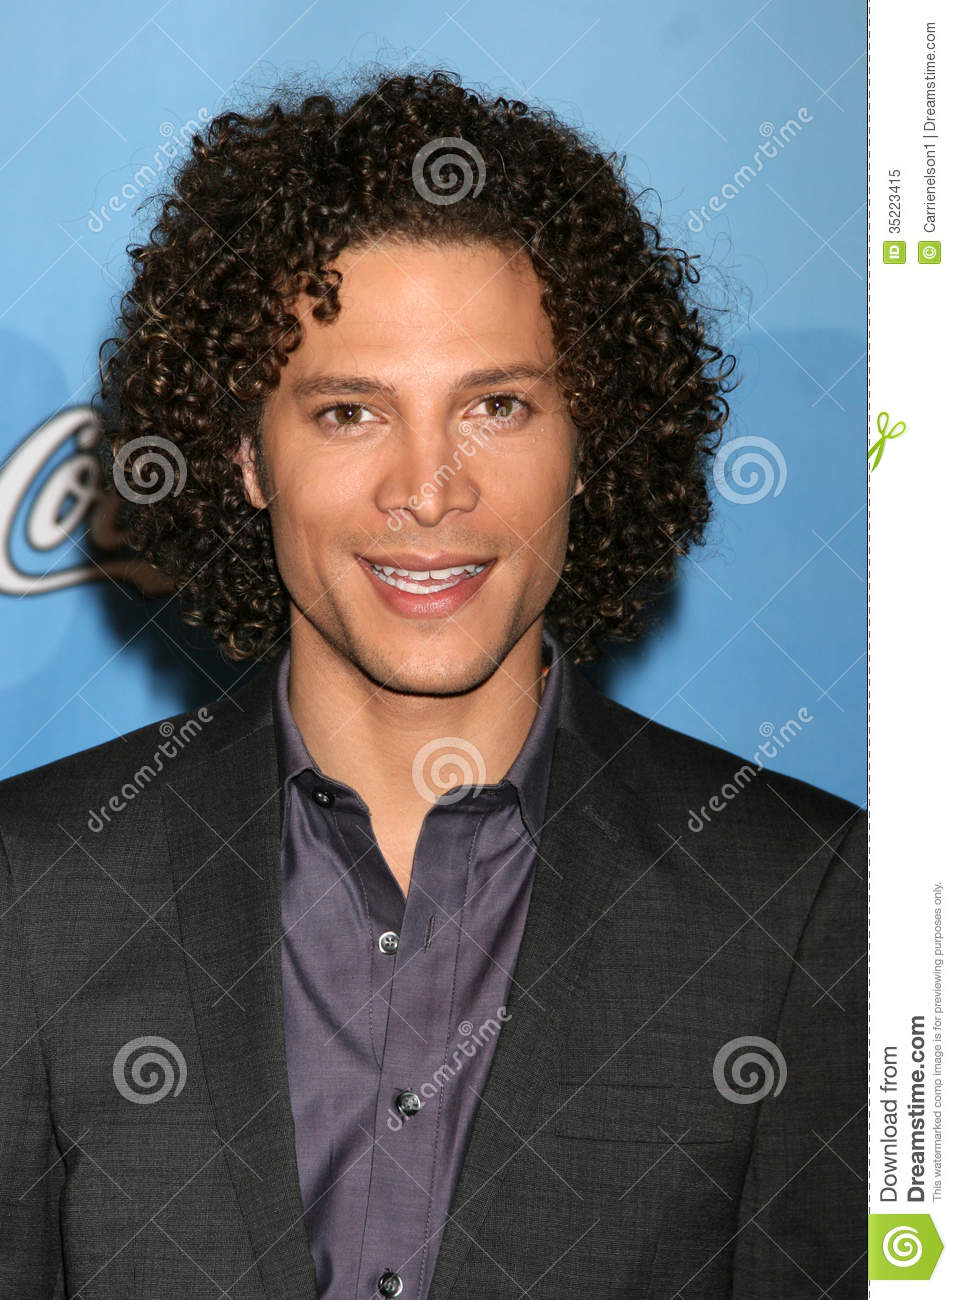 justin guarini unchained melody